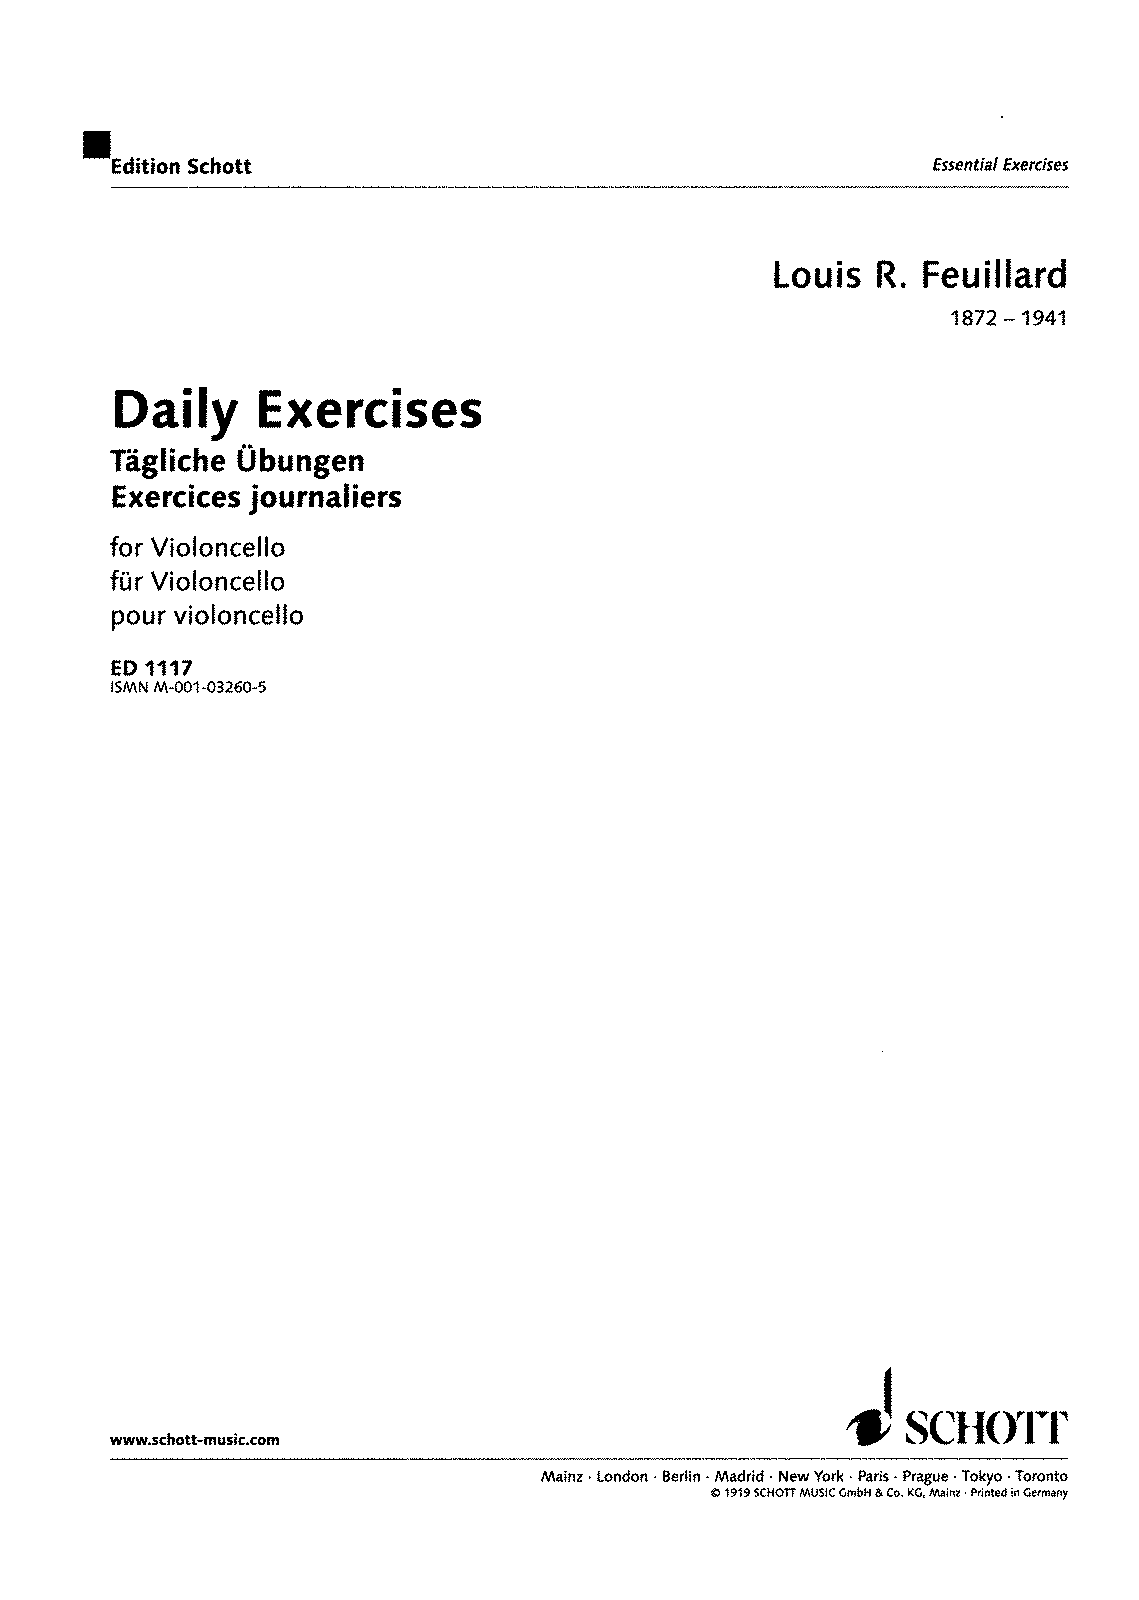 PMLP151184-Feuillard - Daily Exercises for Violoncello.pdf